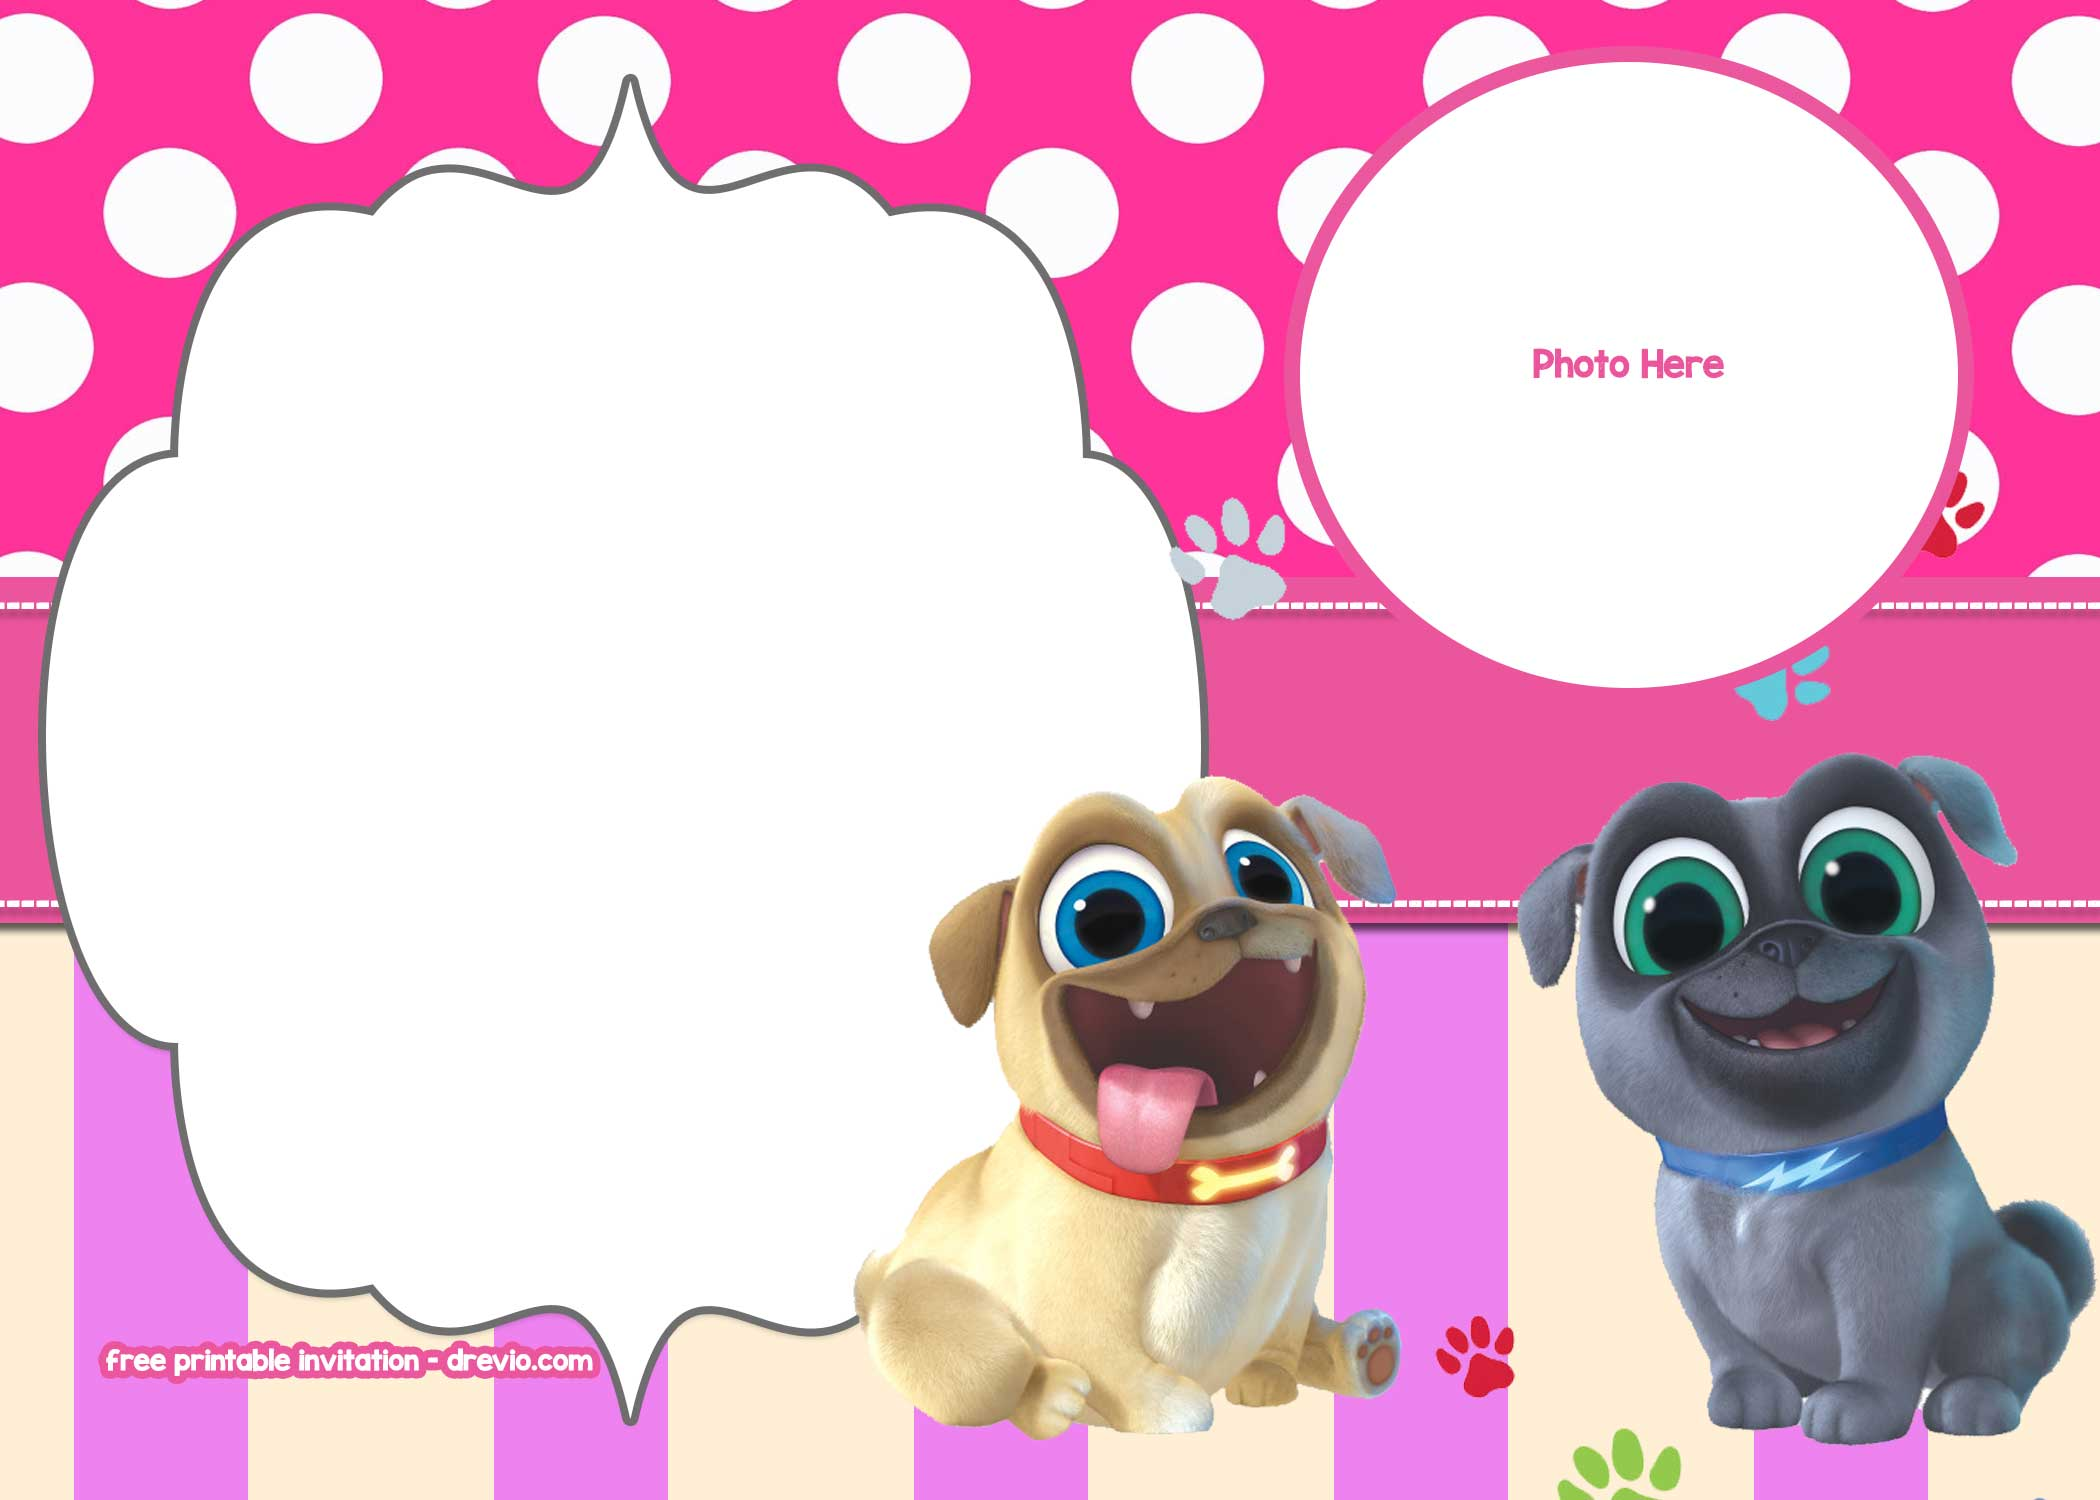 Free Disney Puppy Dog Pals Invitation Templates